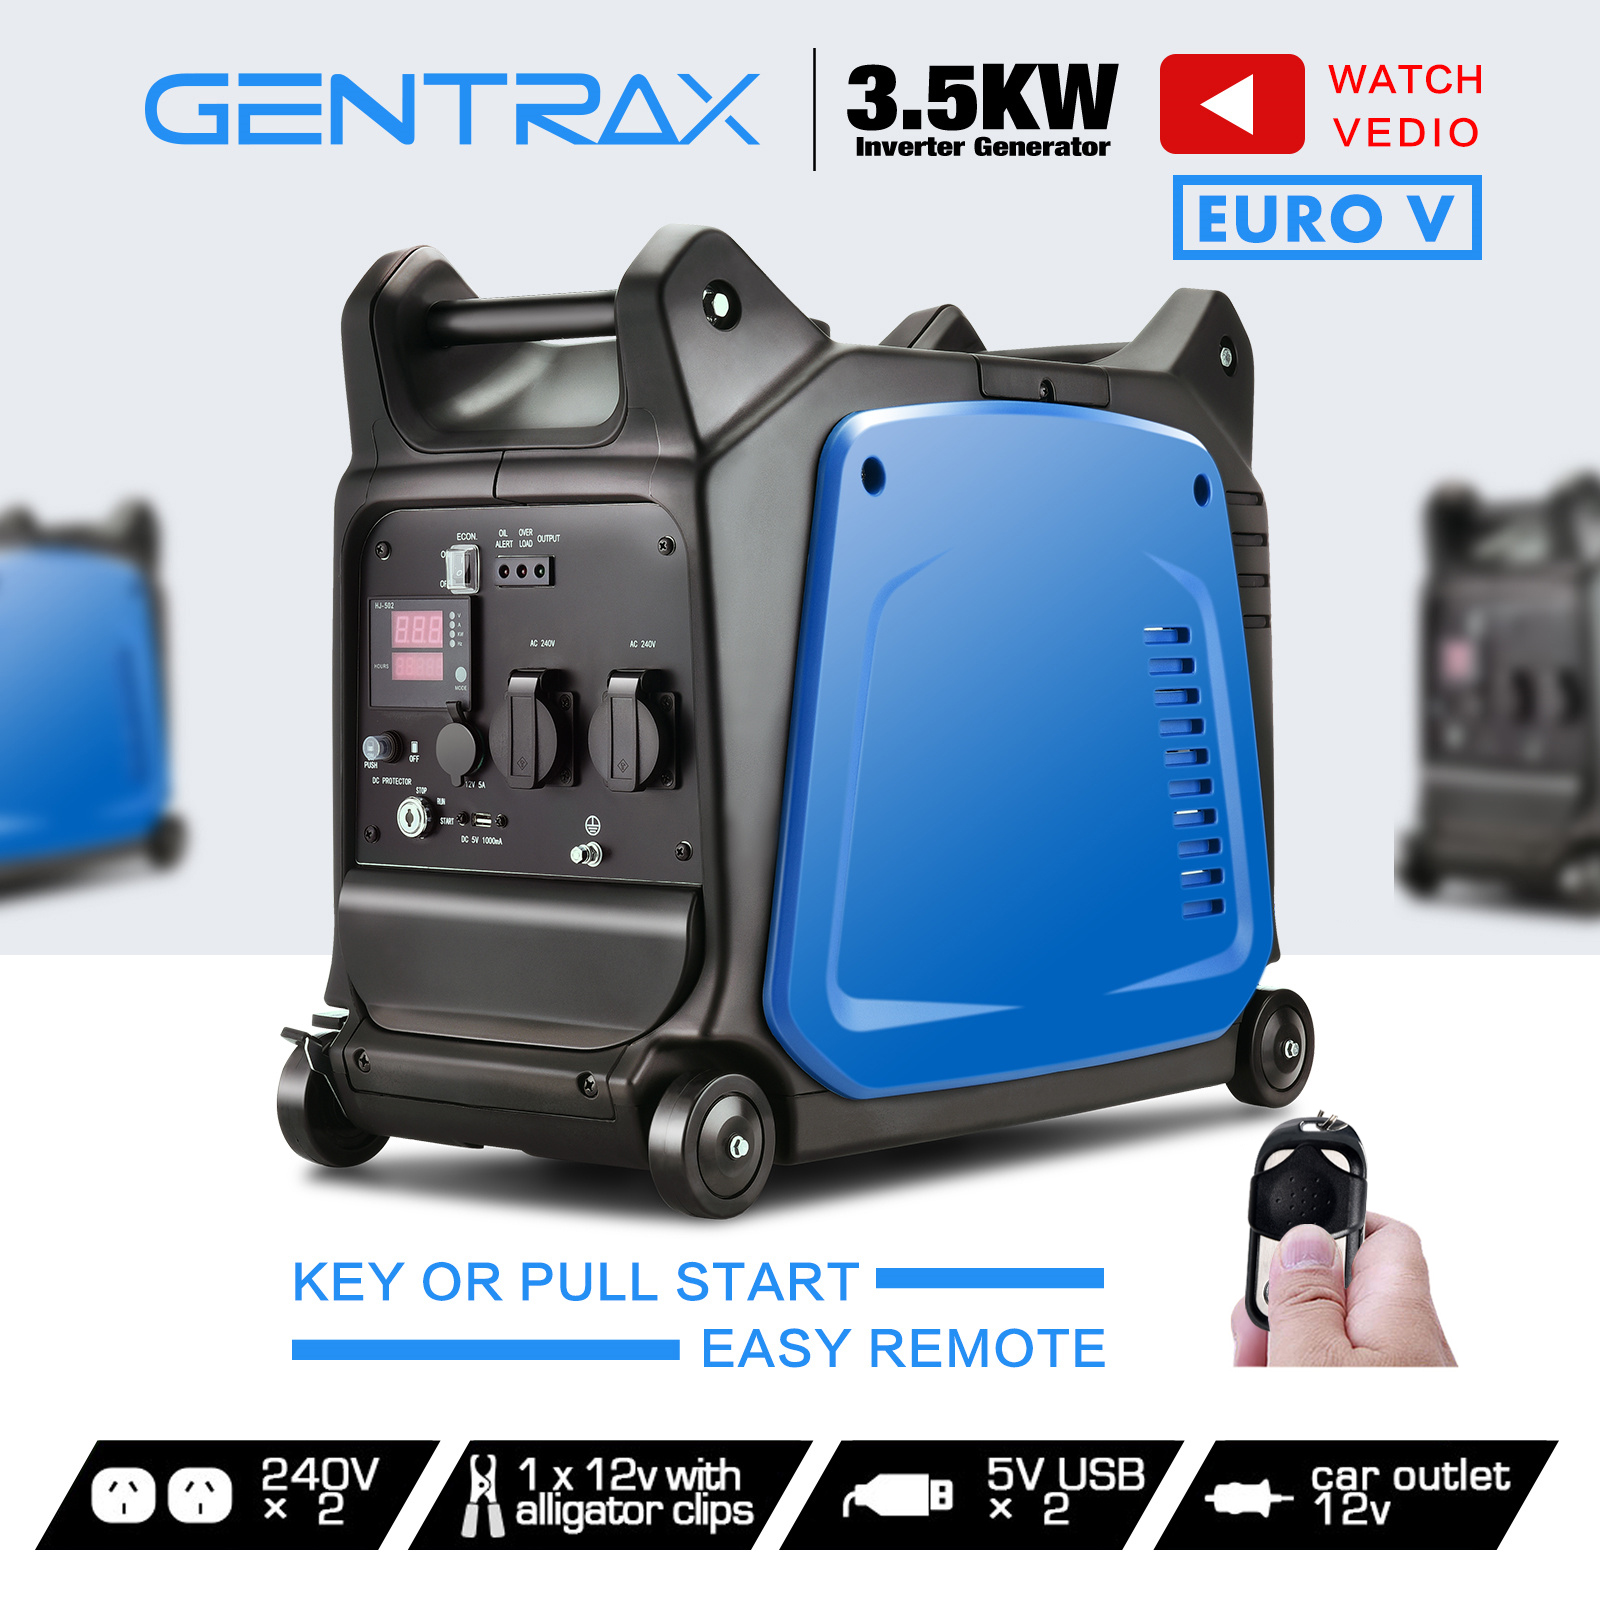 [15%OFF] GenTrax Inverter Generator 3.5KW Max 3.2KW Rated Remote Portable Petrol